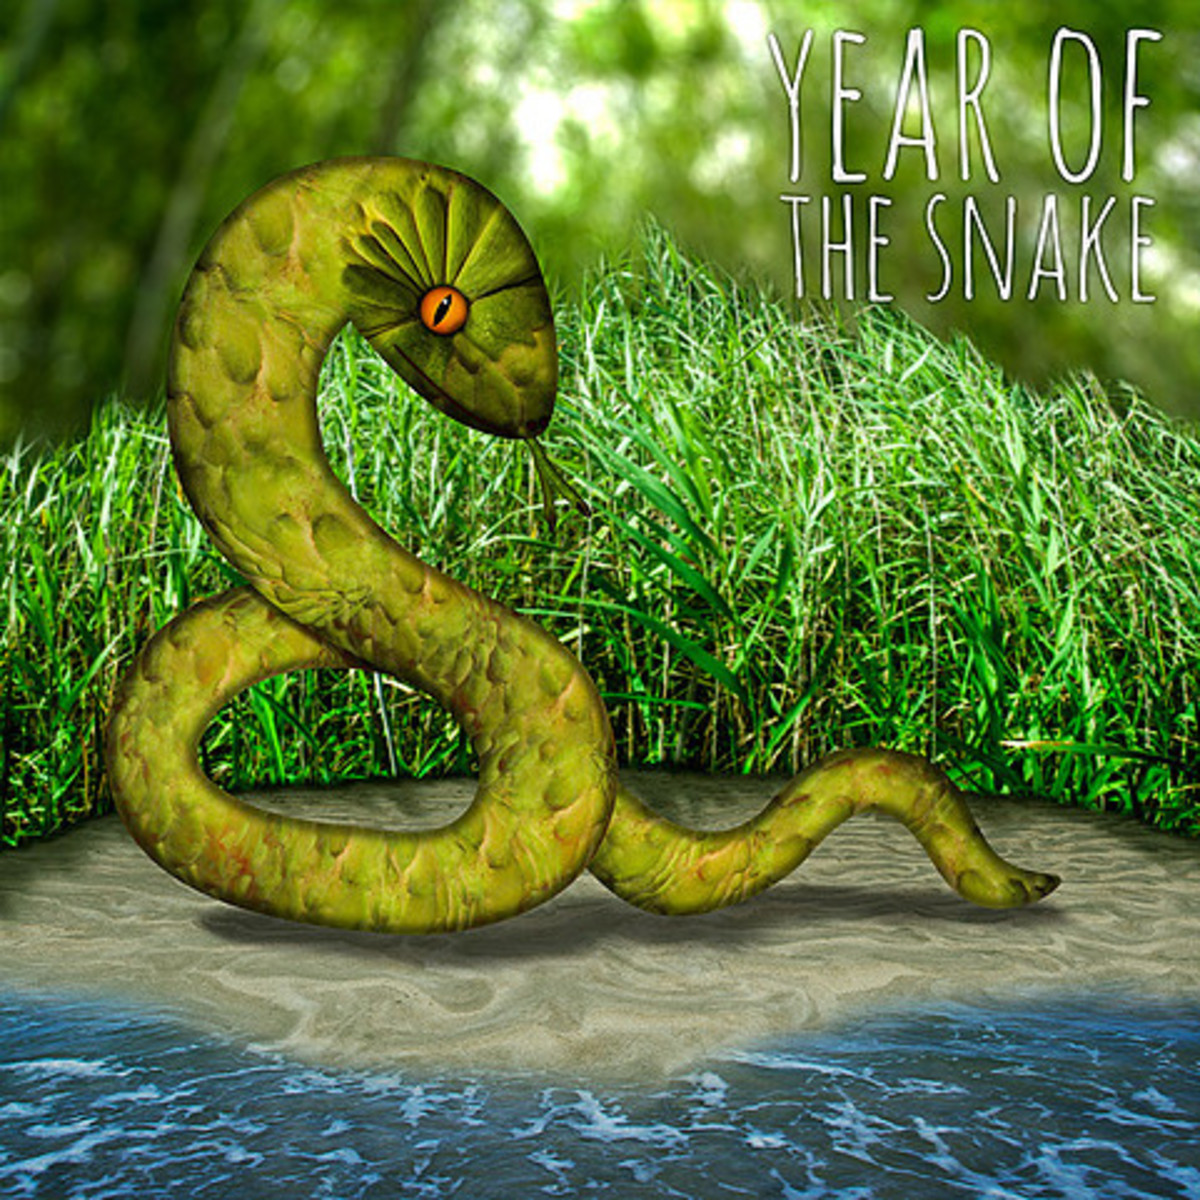 Carrie Webster - The Year of The Snake